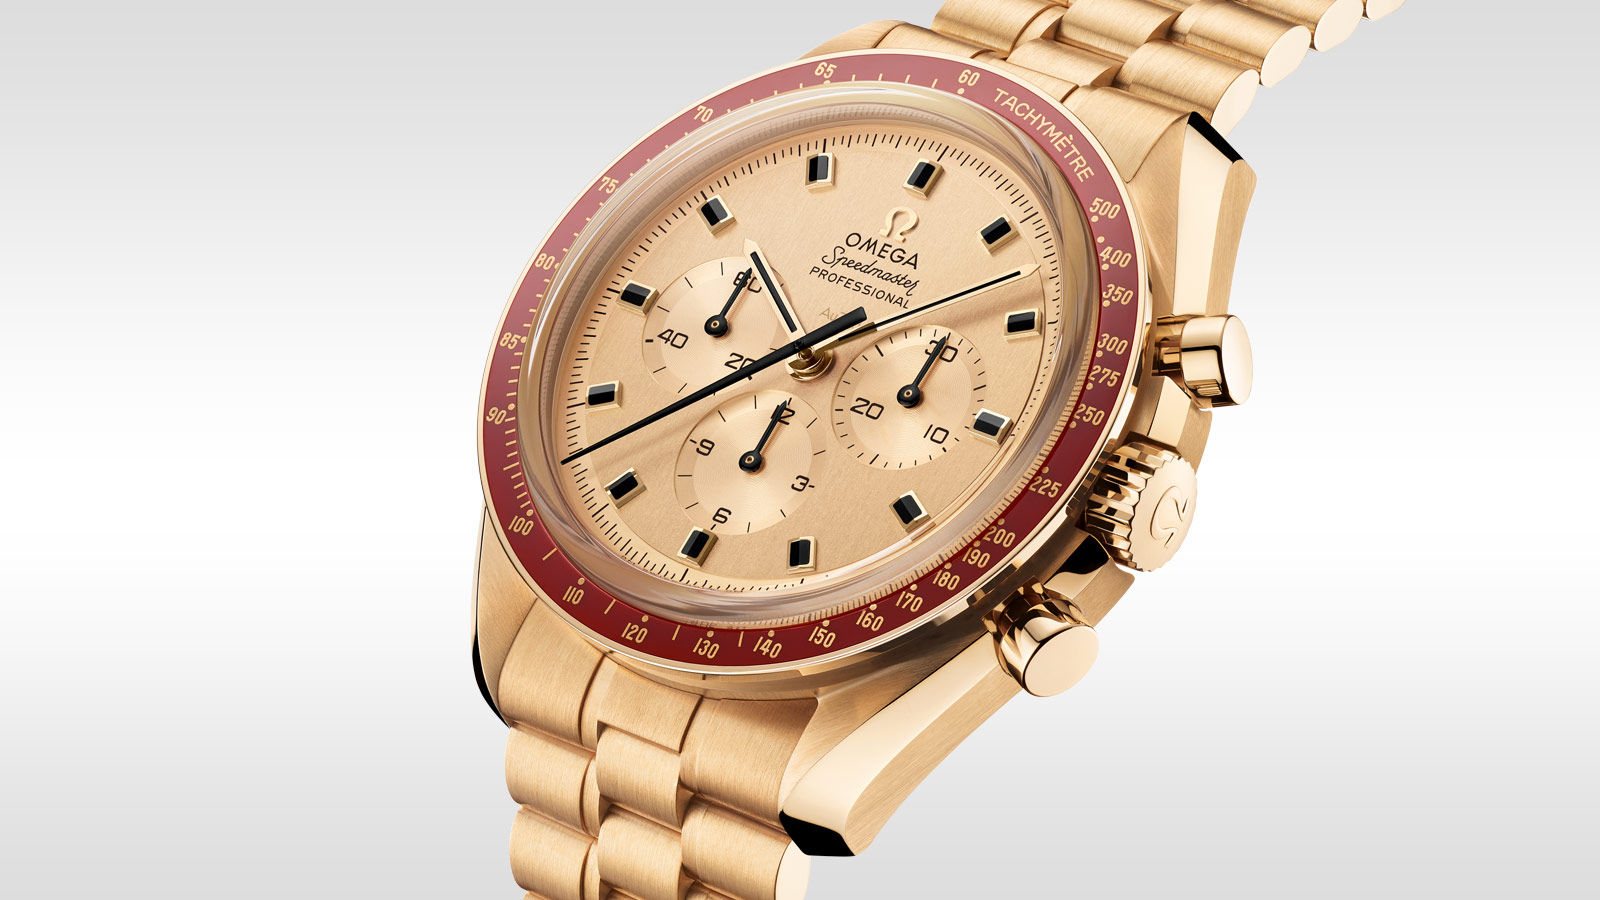 Speedmaster ムーンウォッチ Moonwatch Anniversary Limited Series - 310.60.42.50.99.001 - ビュー 1